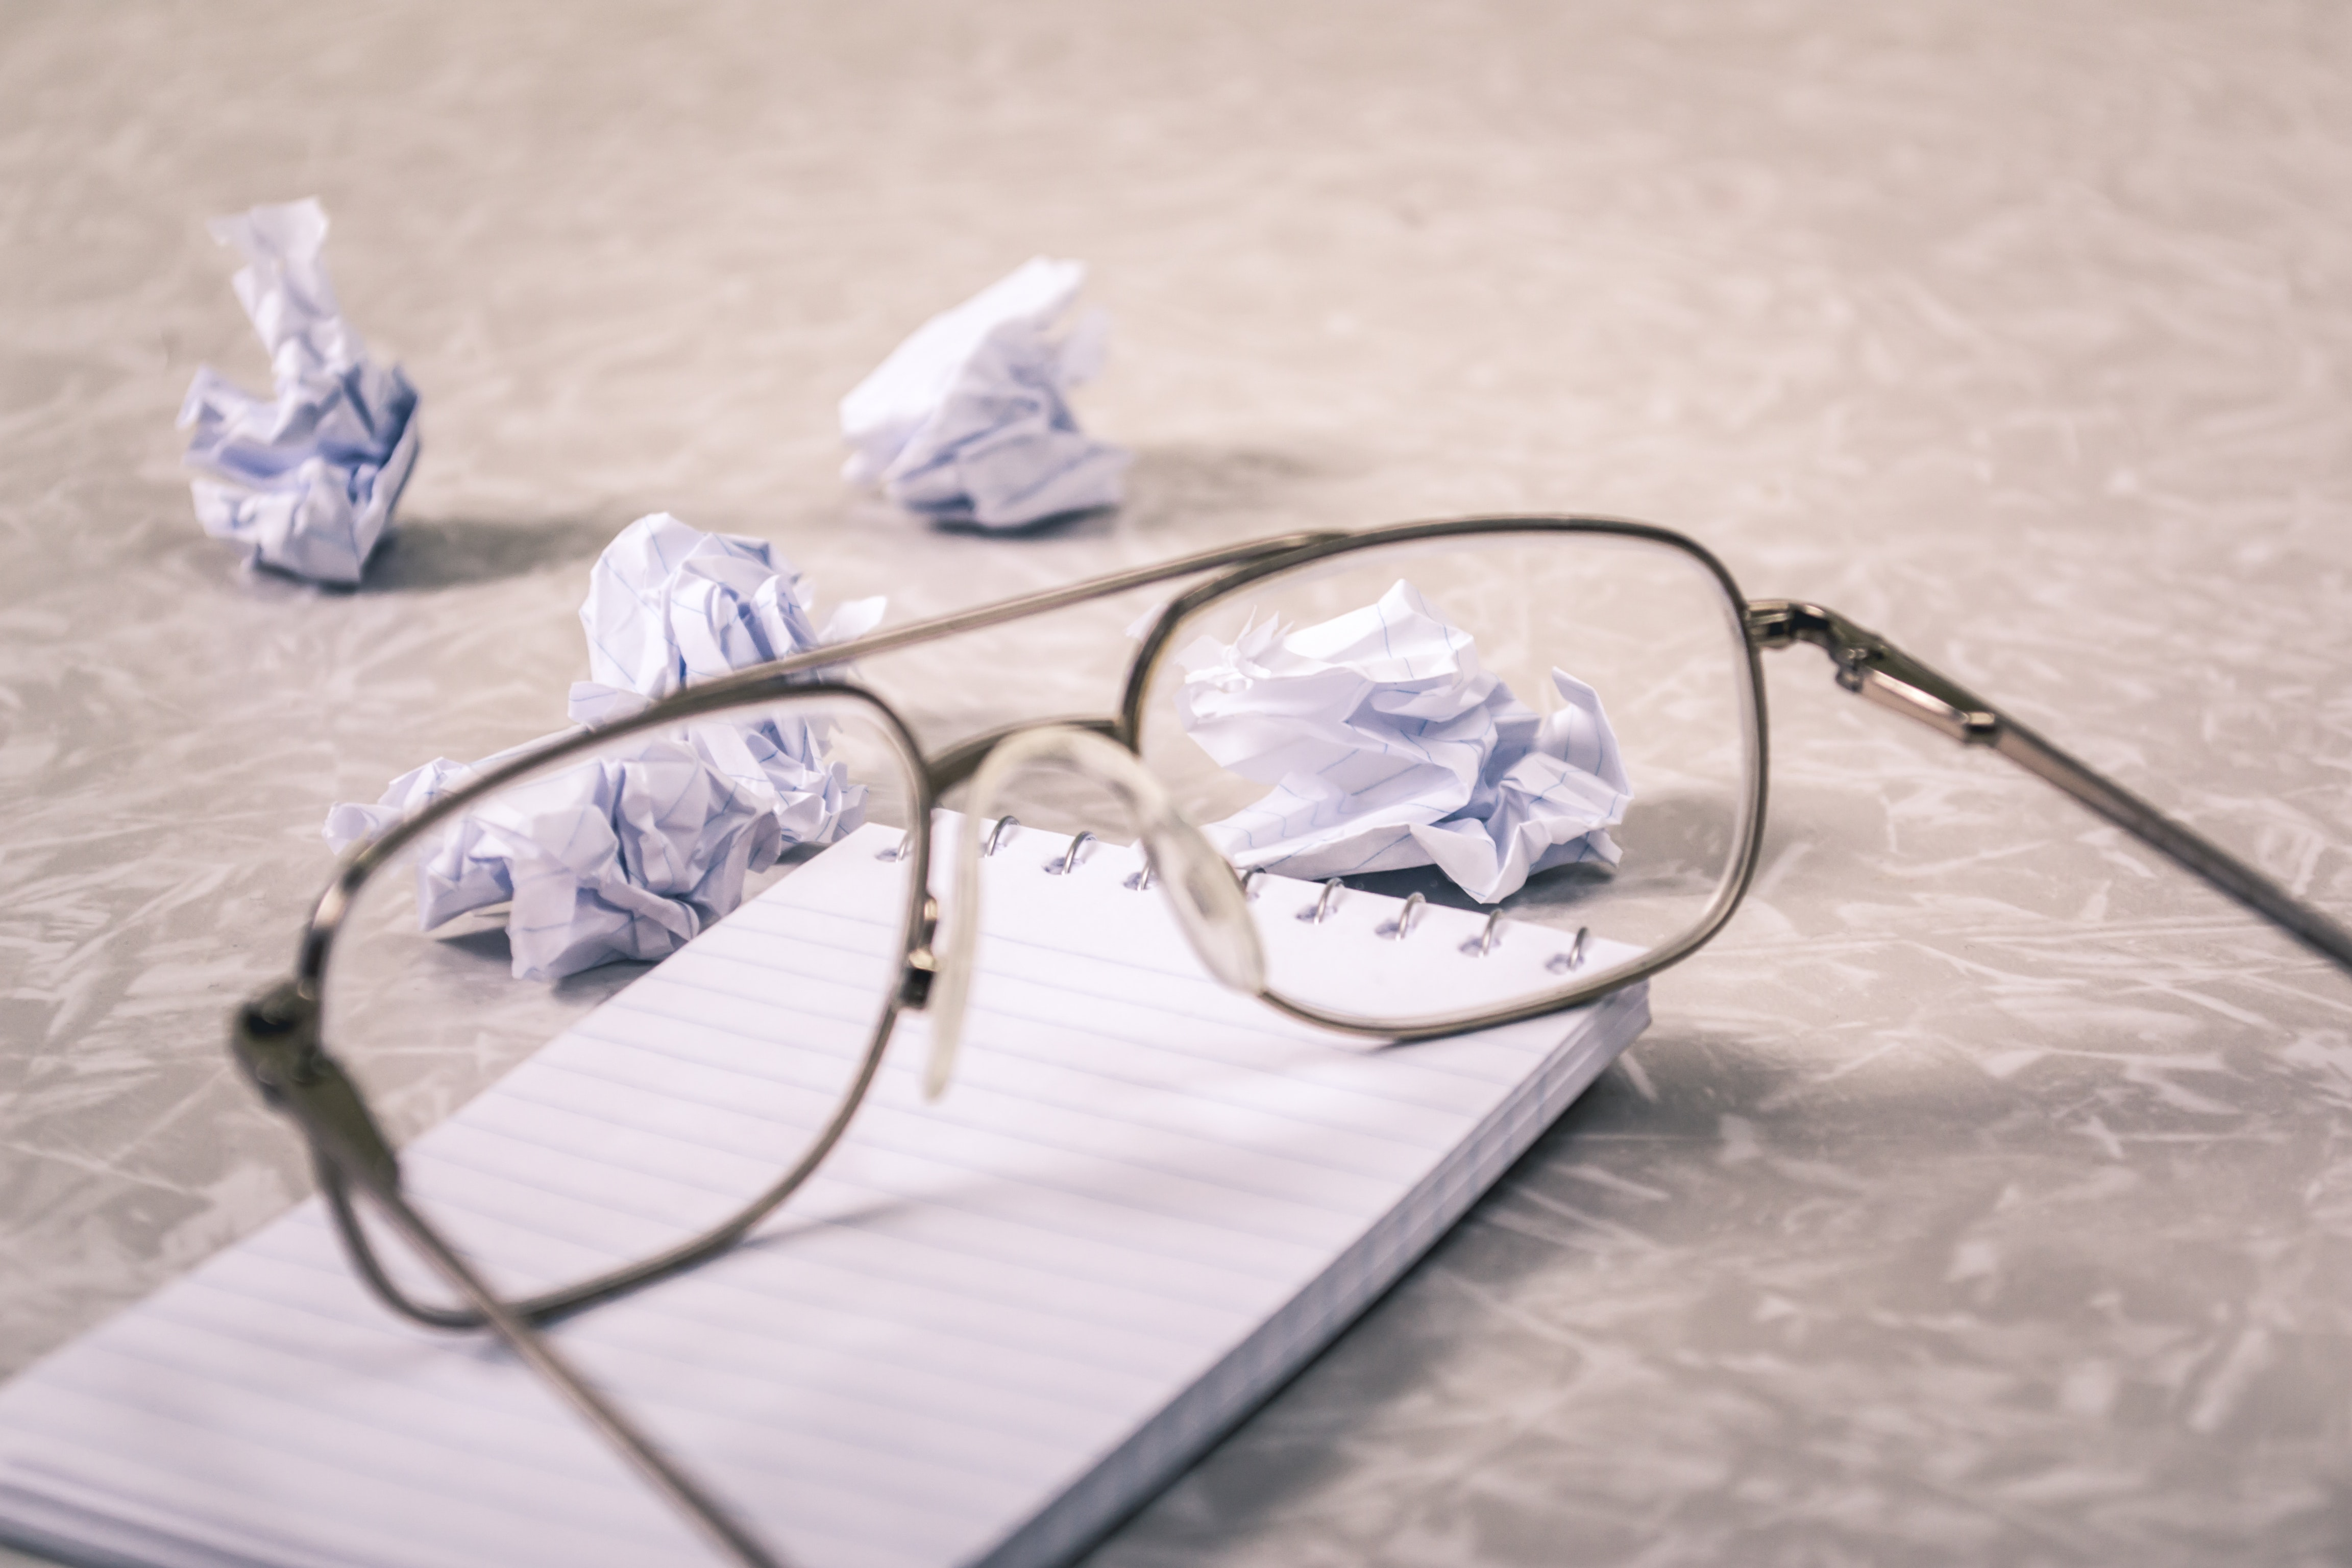 close up photography of eyeglasses near crumpled papers 963056